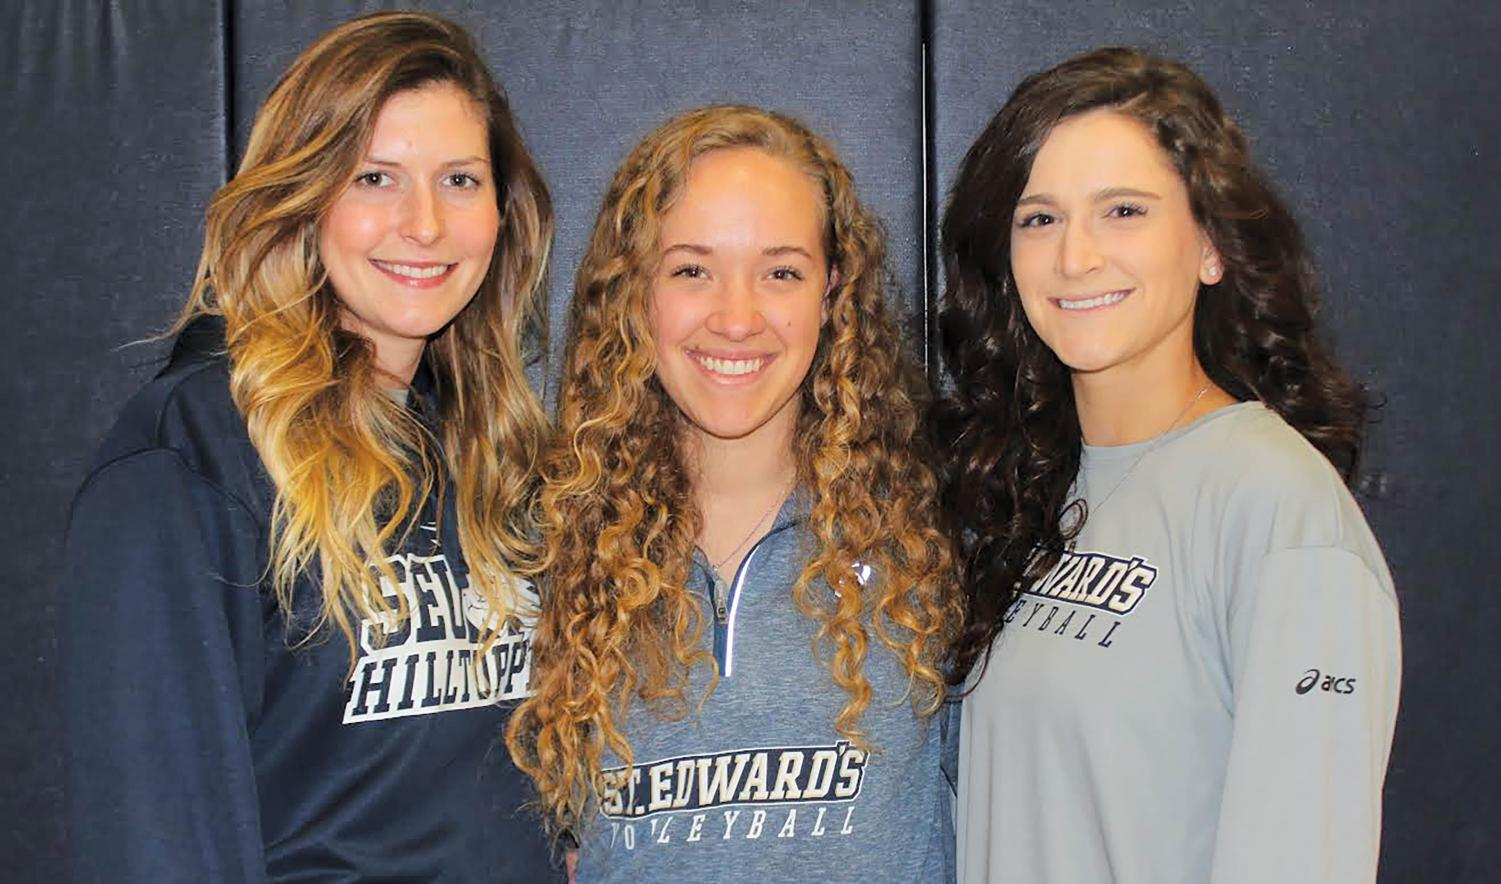 The SEU volleyball finished the season with a respectable 18-12 record that saw three athletes earn conference recognition.